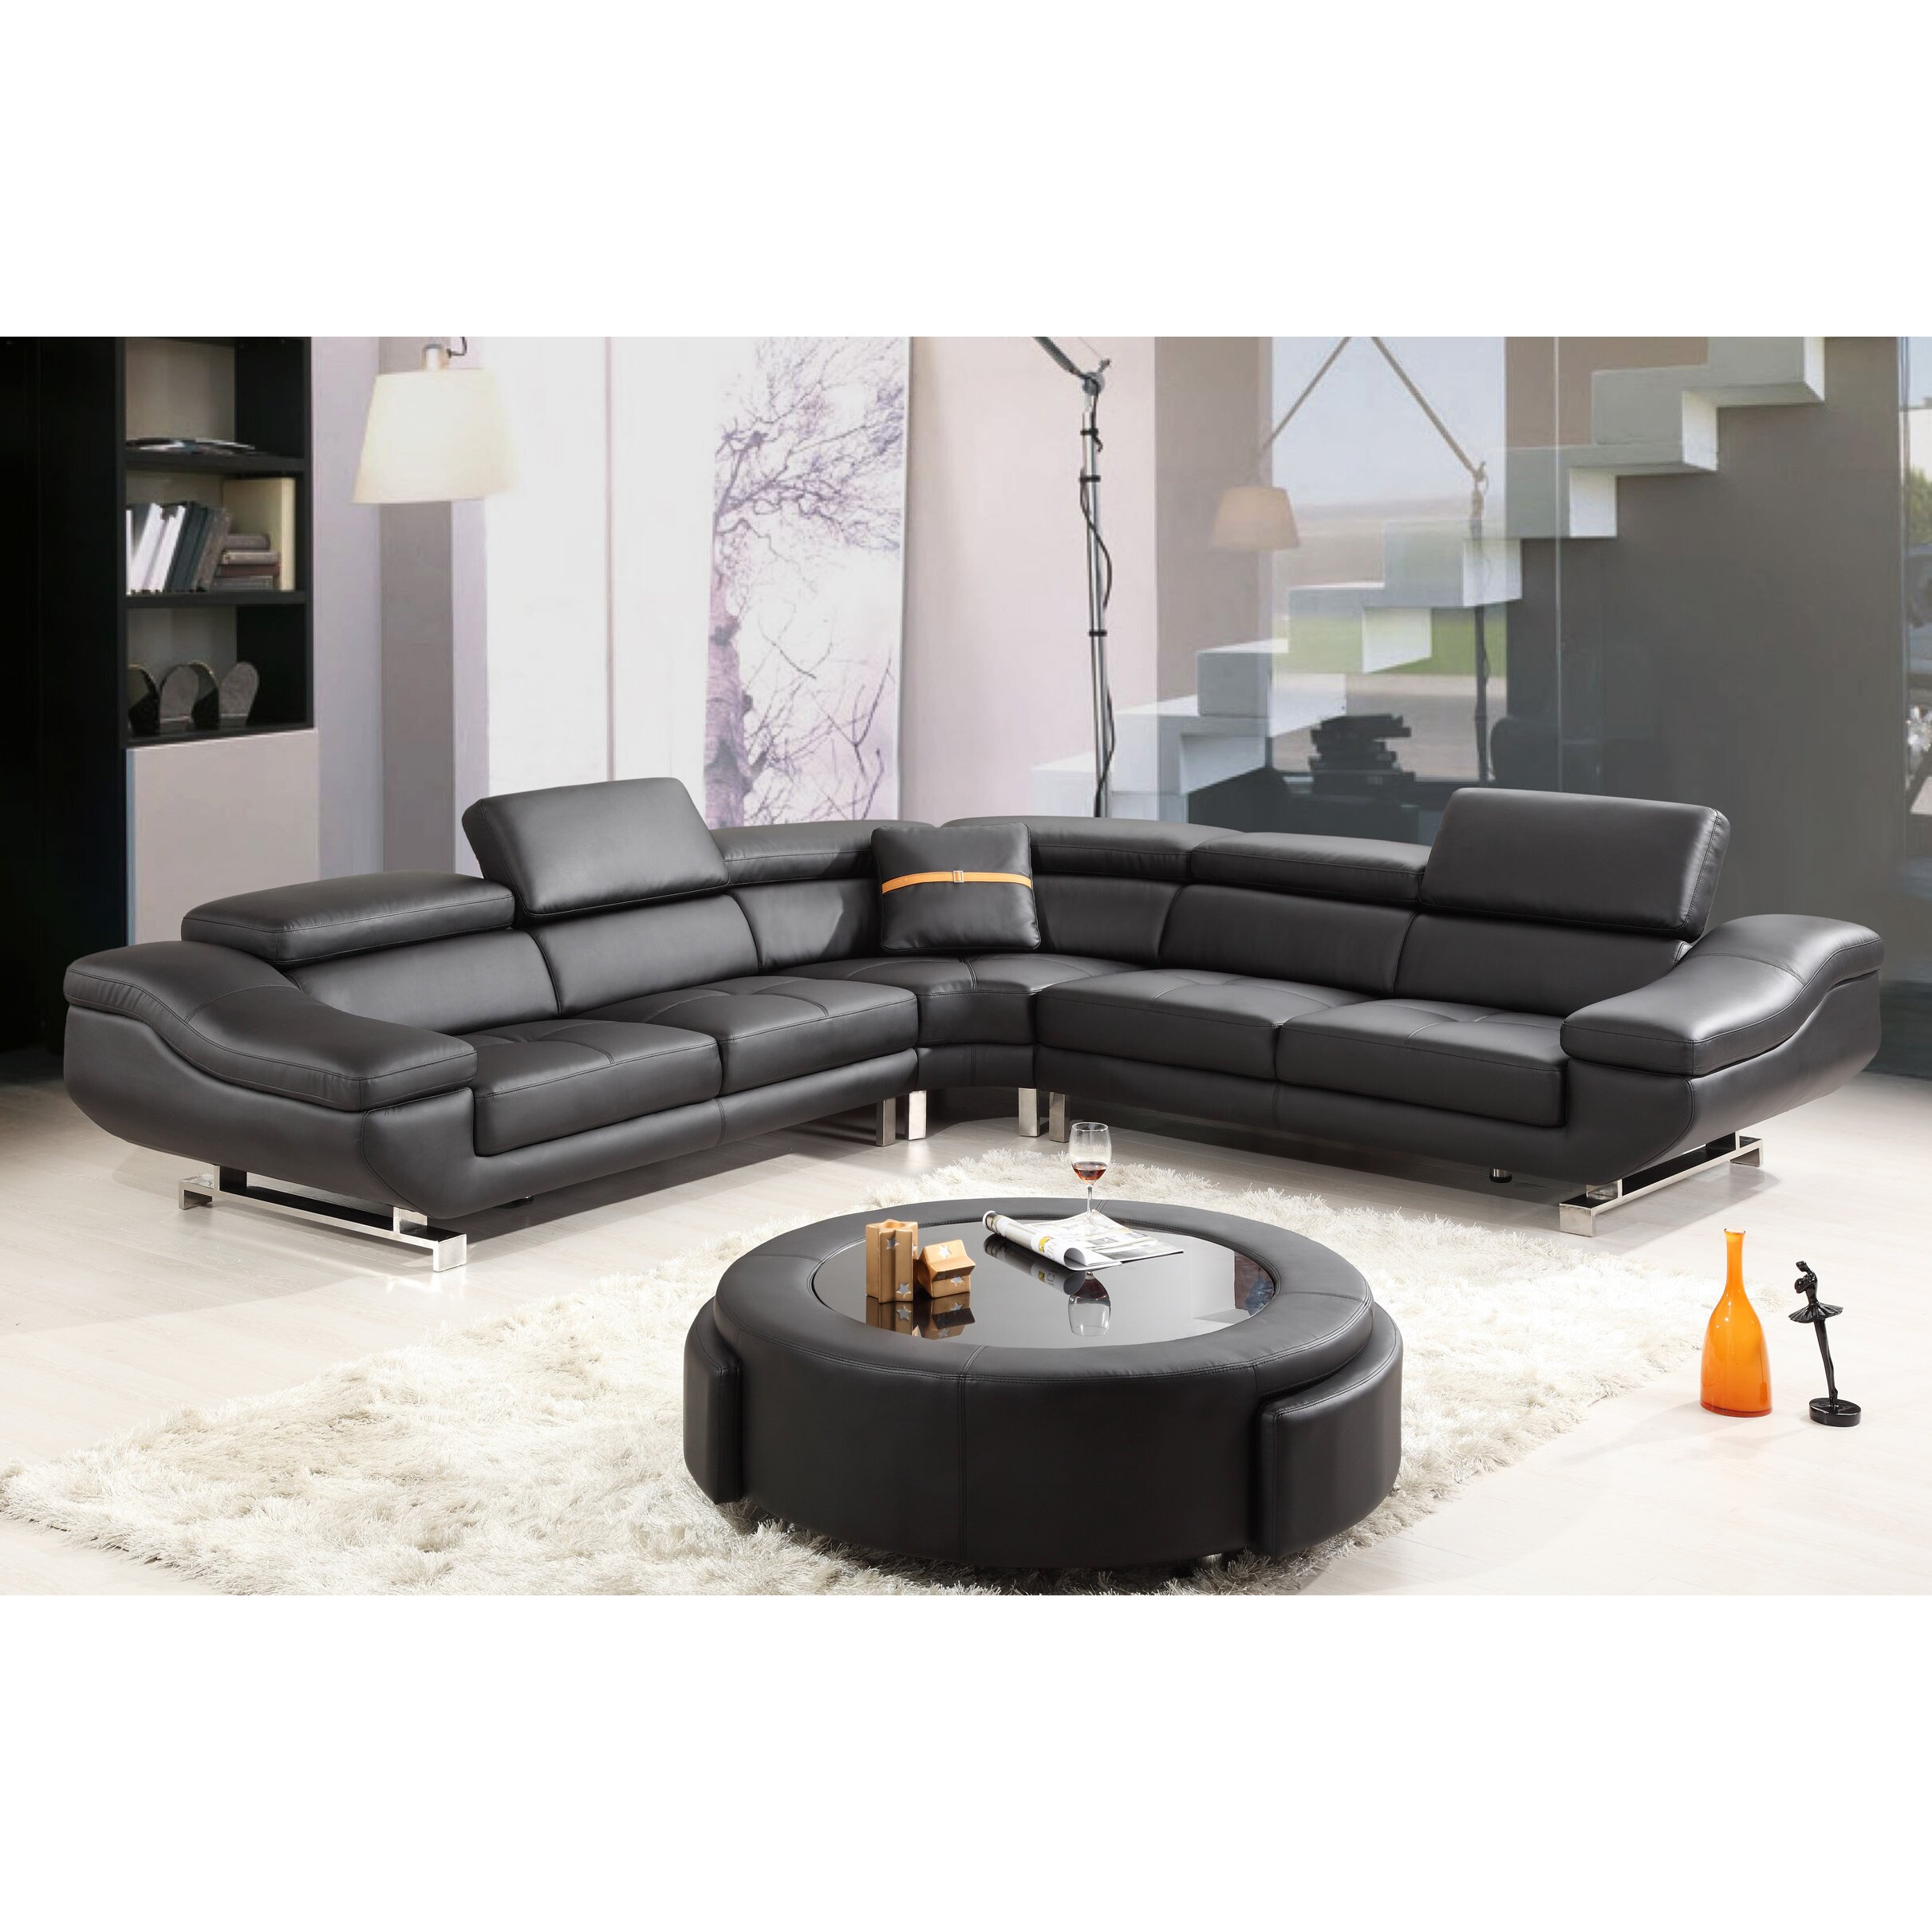 Best quality furniture sectional wayfair for Best quality furniture